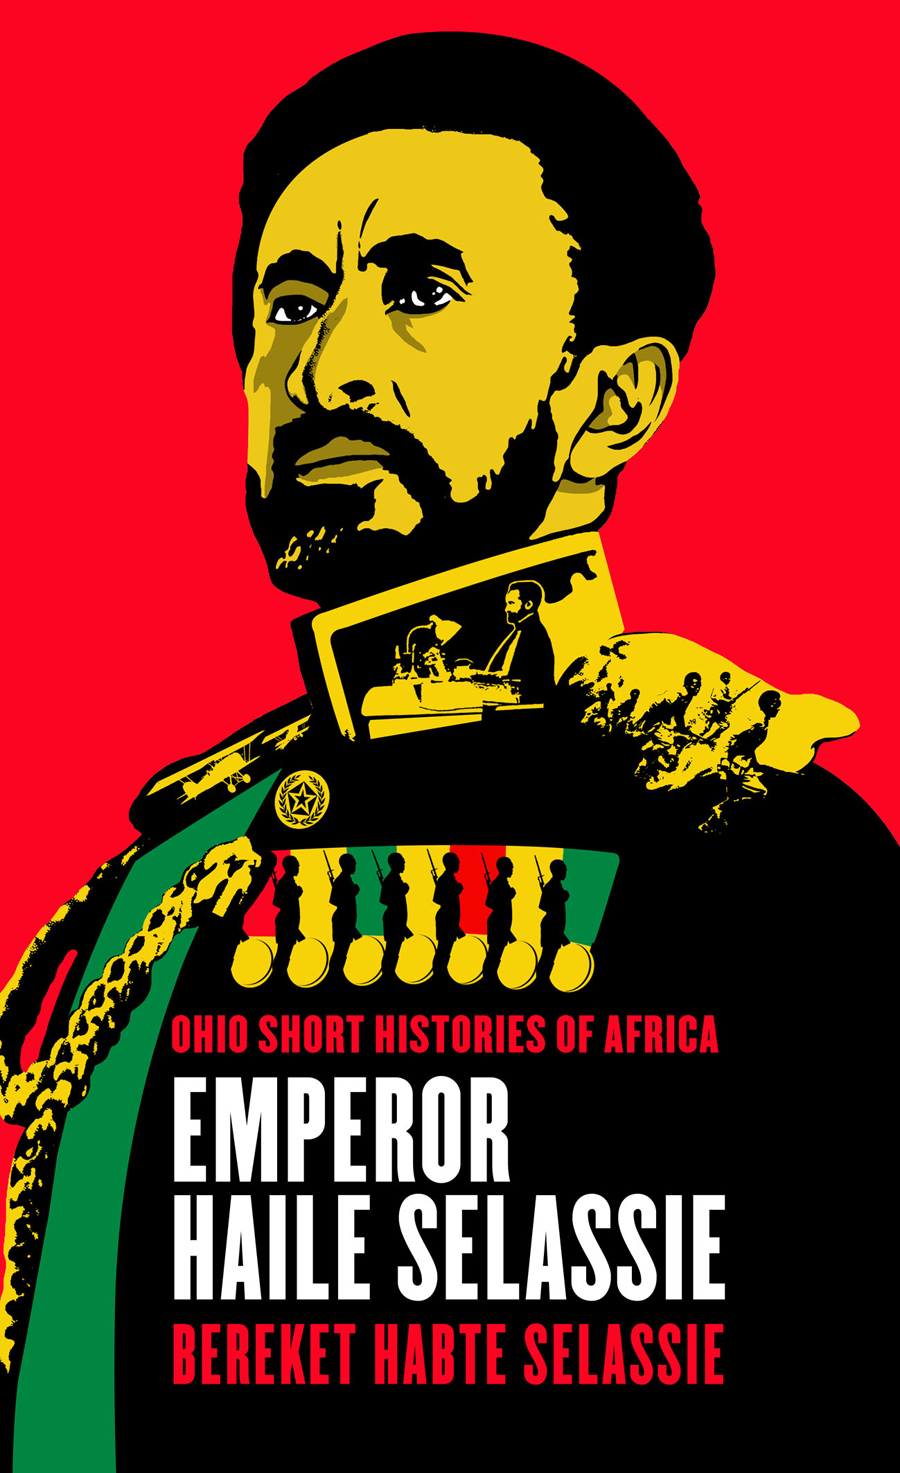 a biography of haile selassie Haile selassie biography, life, interesting facts early life haile selassie, i was born on july 23, 1892, in ejersa gora his birth name was lij tafari makonnen, and he was the son of ras makonnen, who was the governor of hararhis father's cousin was the emperor menelik ii, but he did not have a male heir.